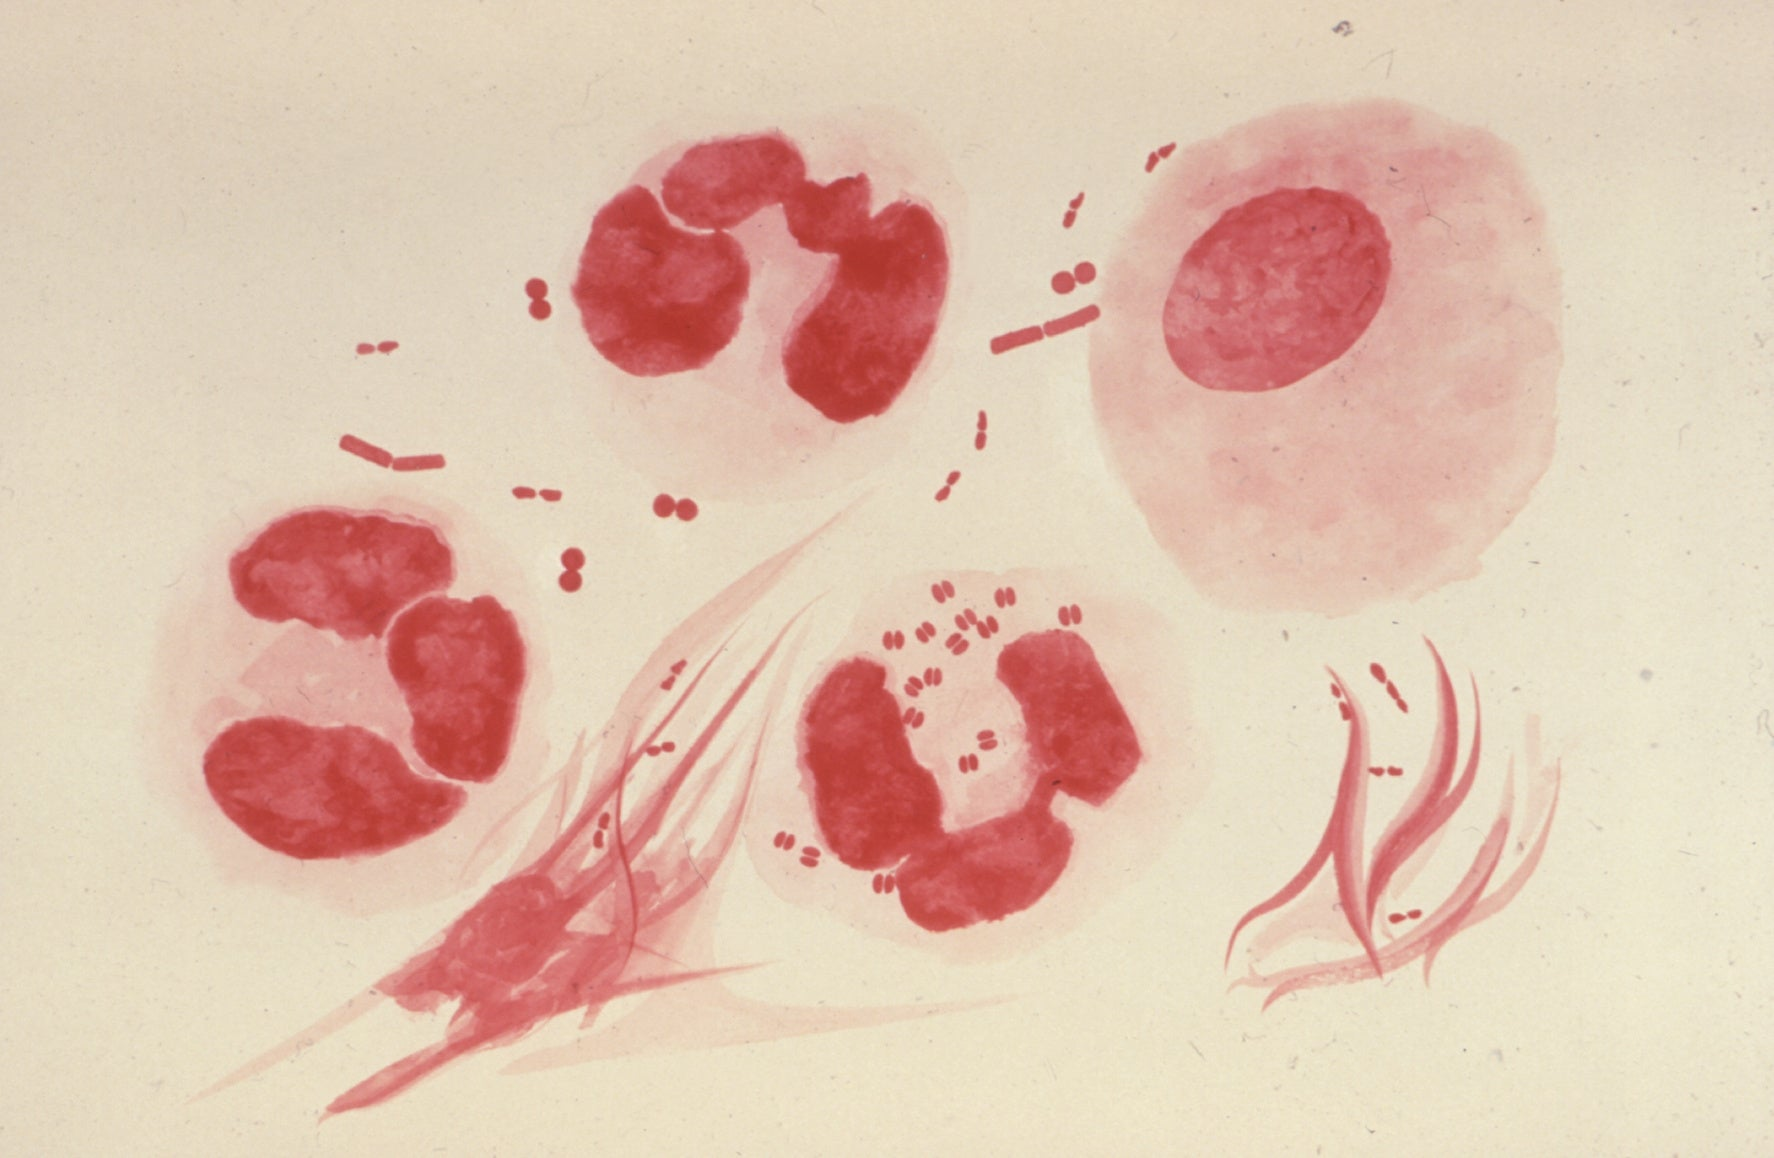 Gram stain showing gonorrhea-causing bacteria